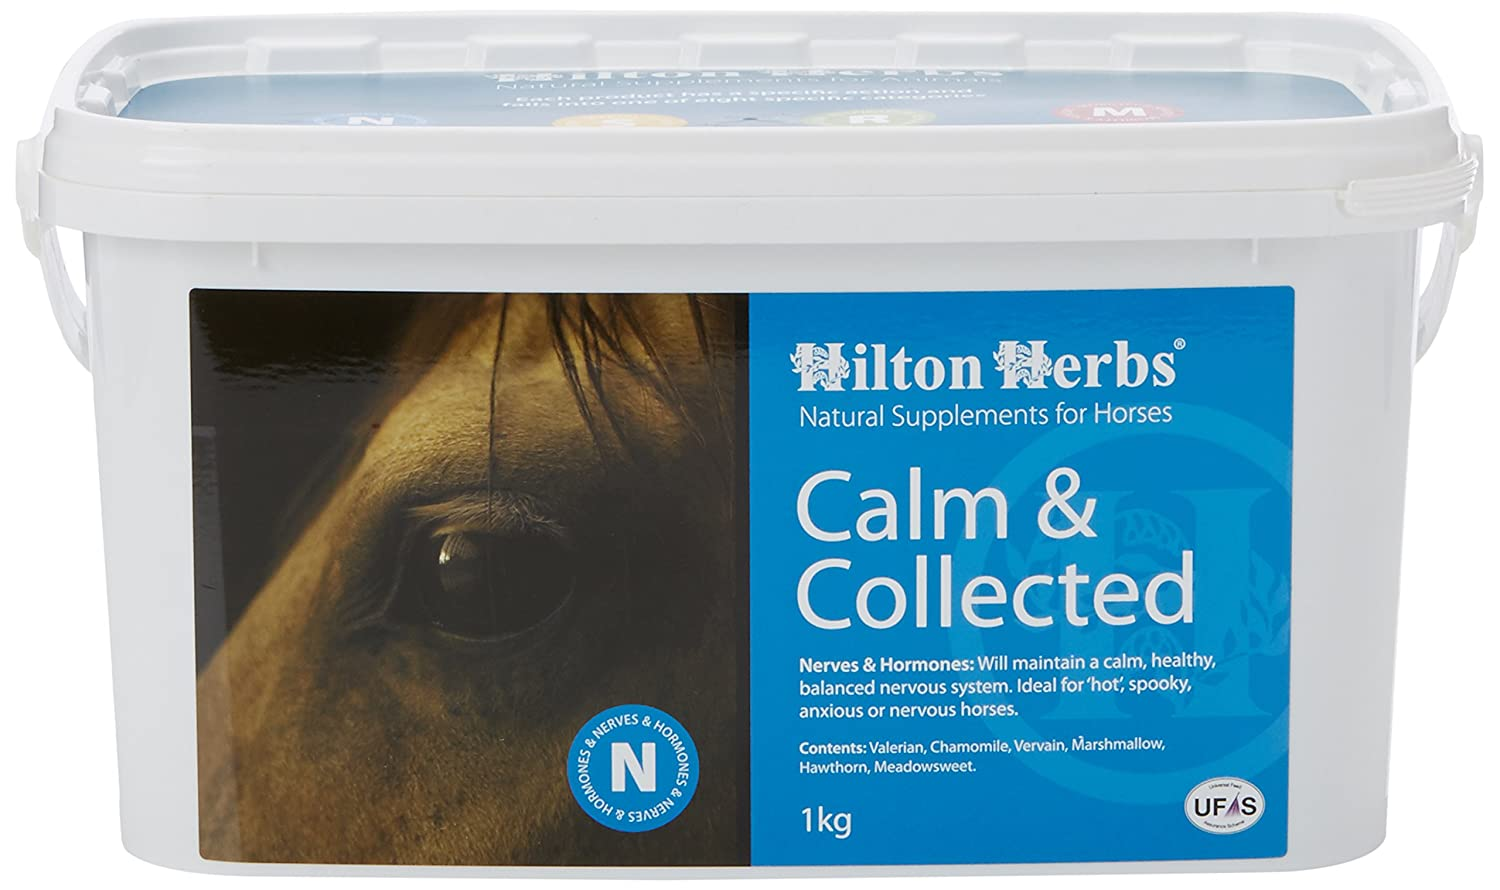 May Vary 2.2lbs May Vary 2.2lbs Hilton Herbs Calm and Collected 1 kg